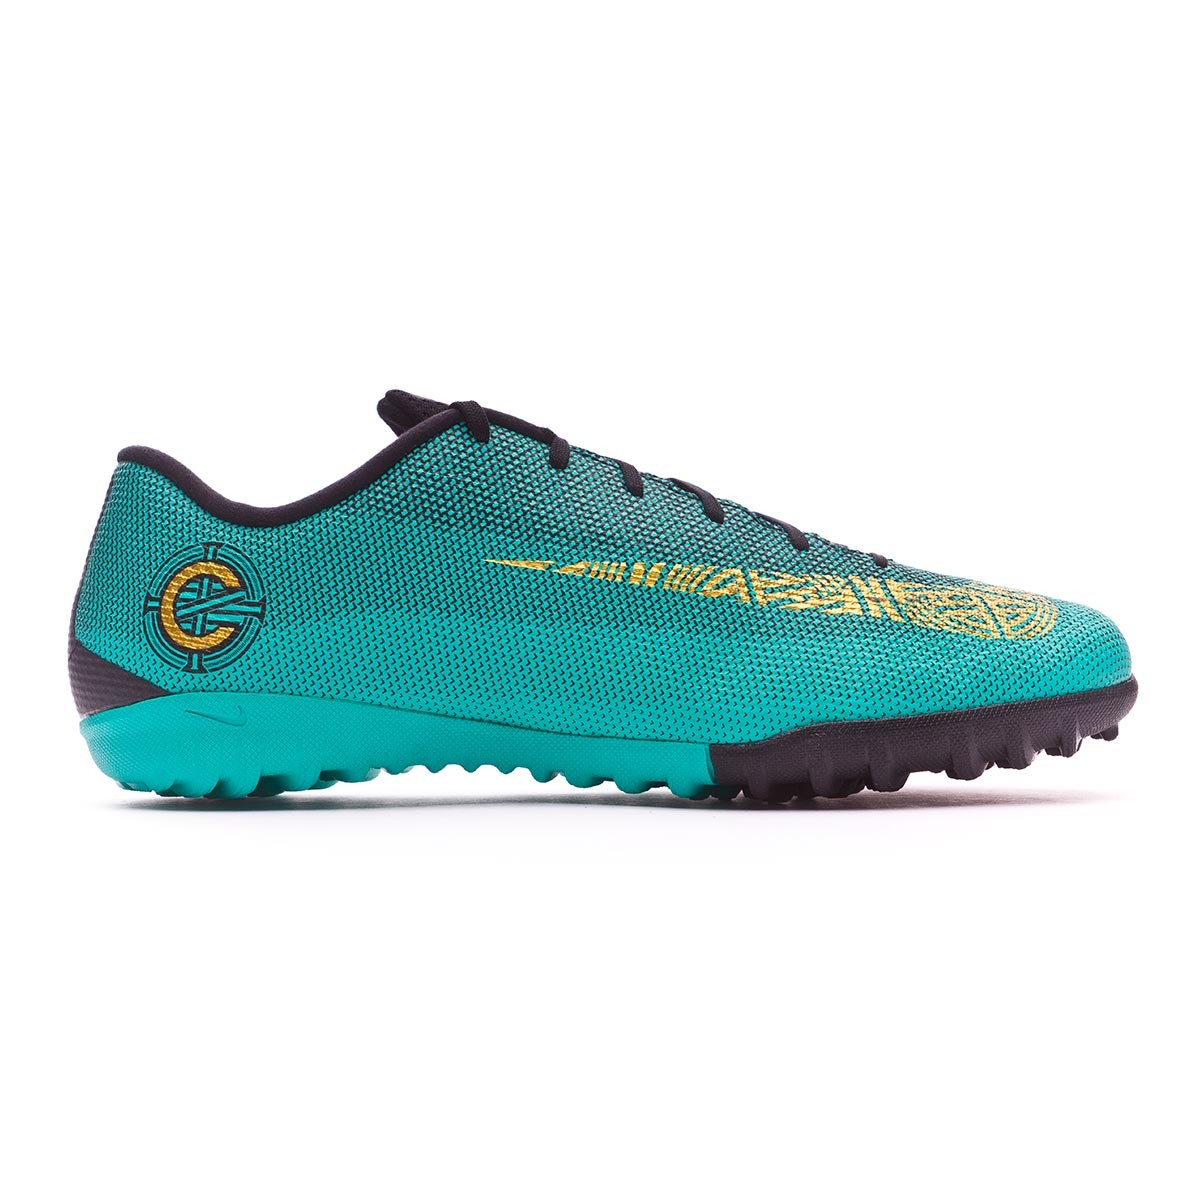 8971d0a2f489 Football Boot Nike Mercurial VaporX XII Academy CR7 Turf Clear jade-Metallic  vivid gold-Black - Tienda de fútbol Fútbol Emotion